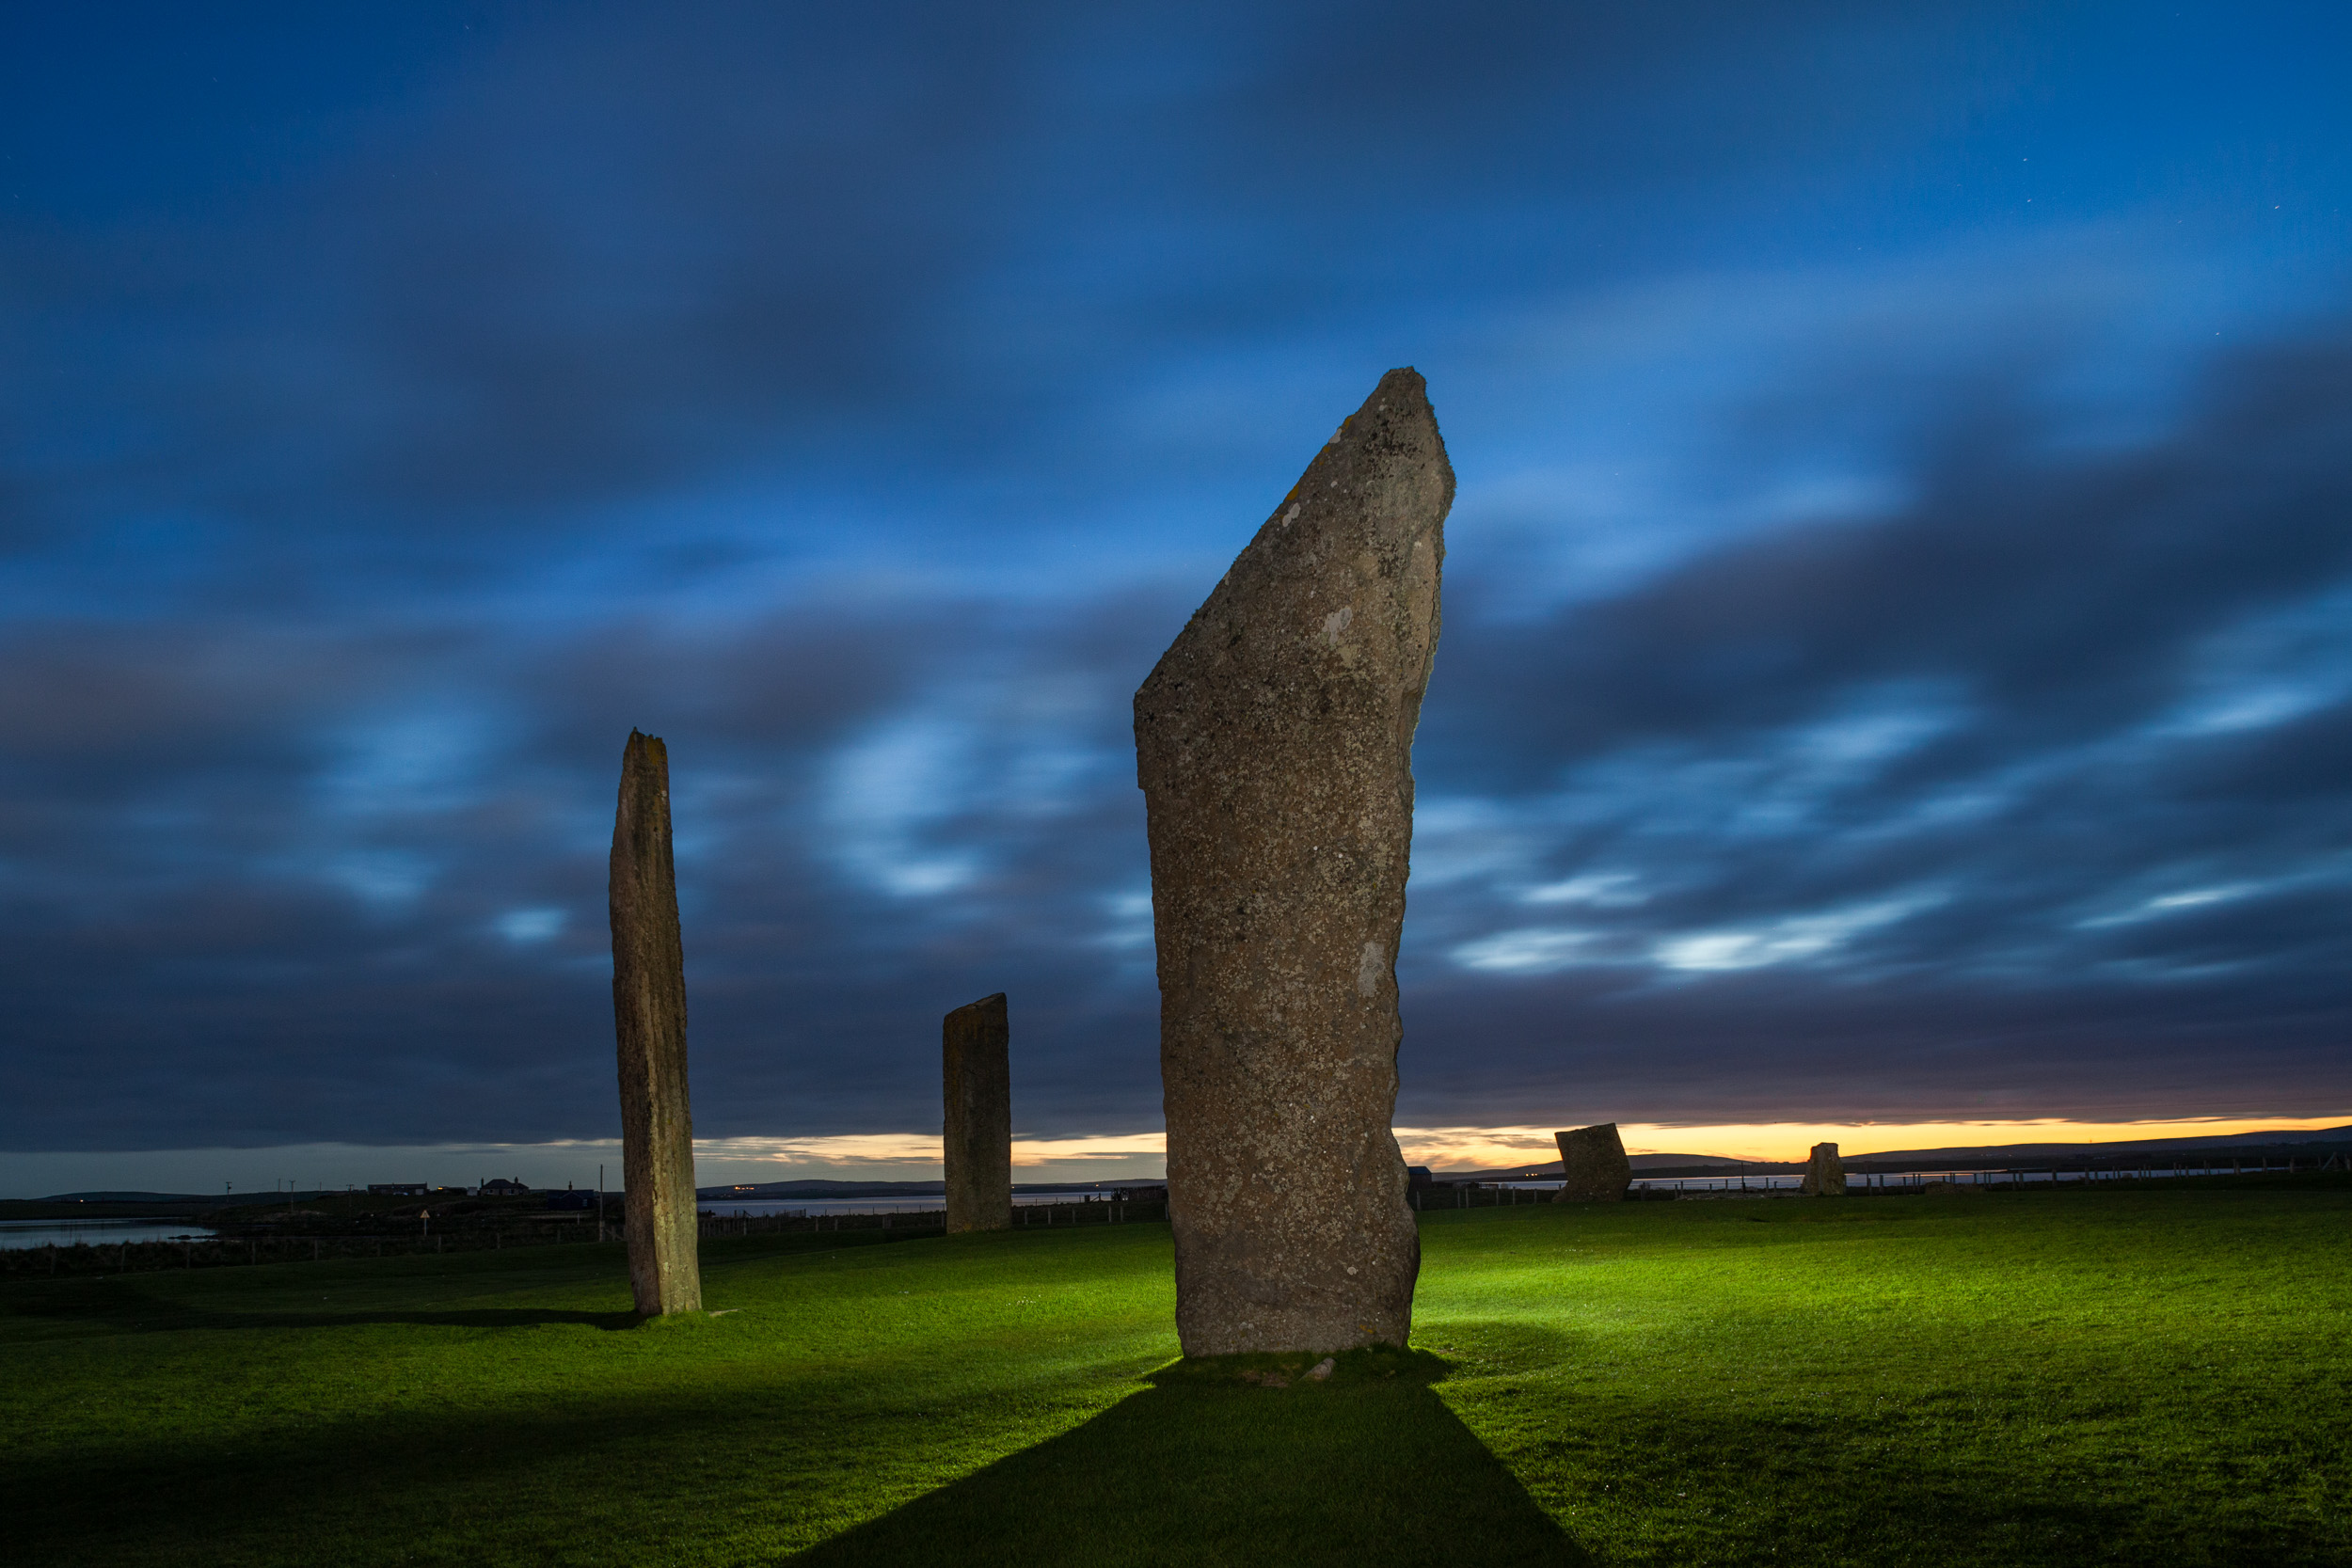 Stones of Stenness, Orkney, Scotland. Canon 5D with a Nikkor 28mm f/3.5 PC lens. 30 seconds, f/8, ISO 800.